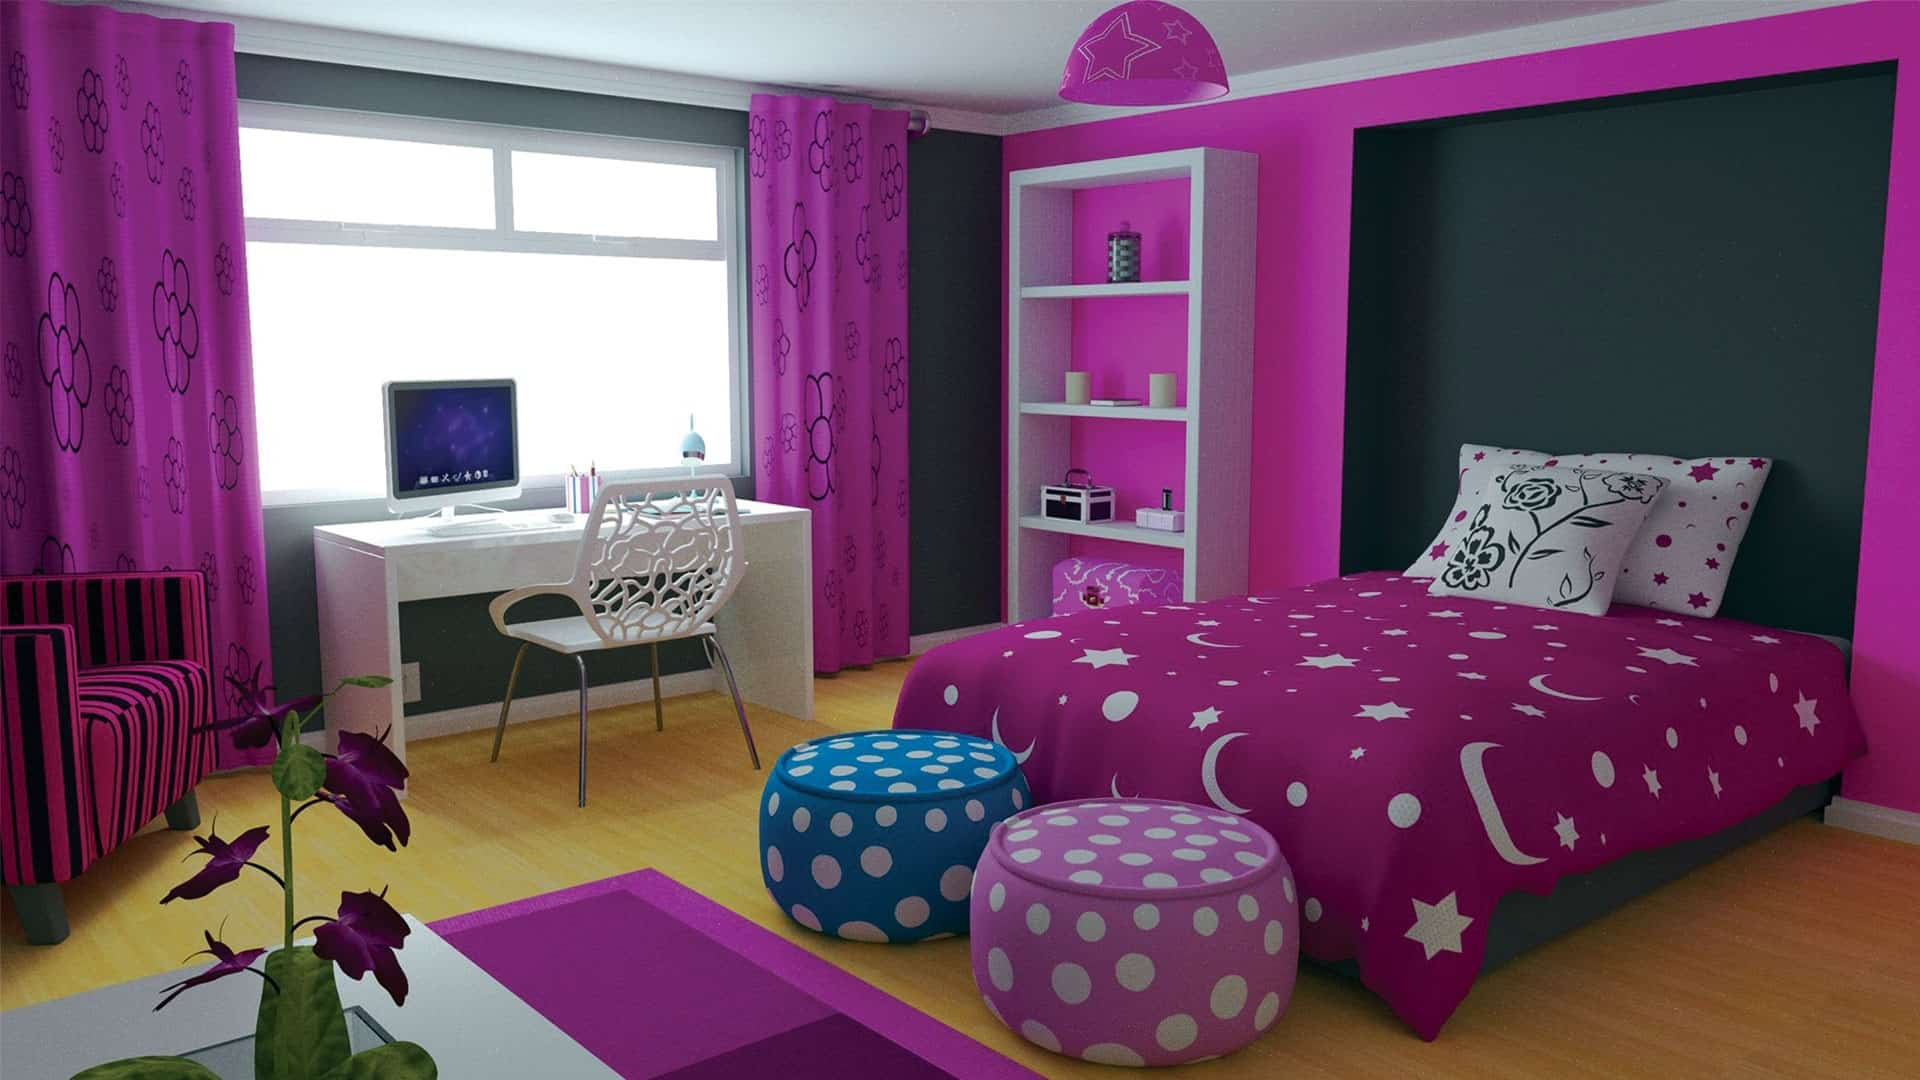 Home decor trends 2017 purple teen room Girls bedroom ideas pictures